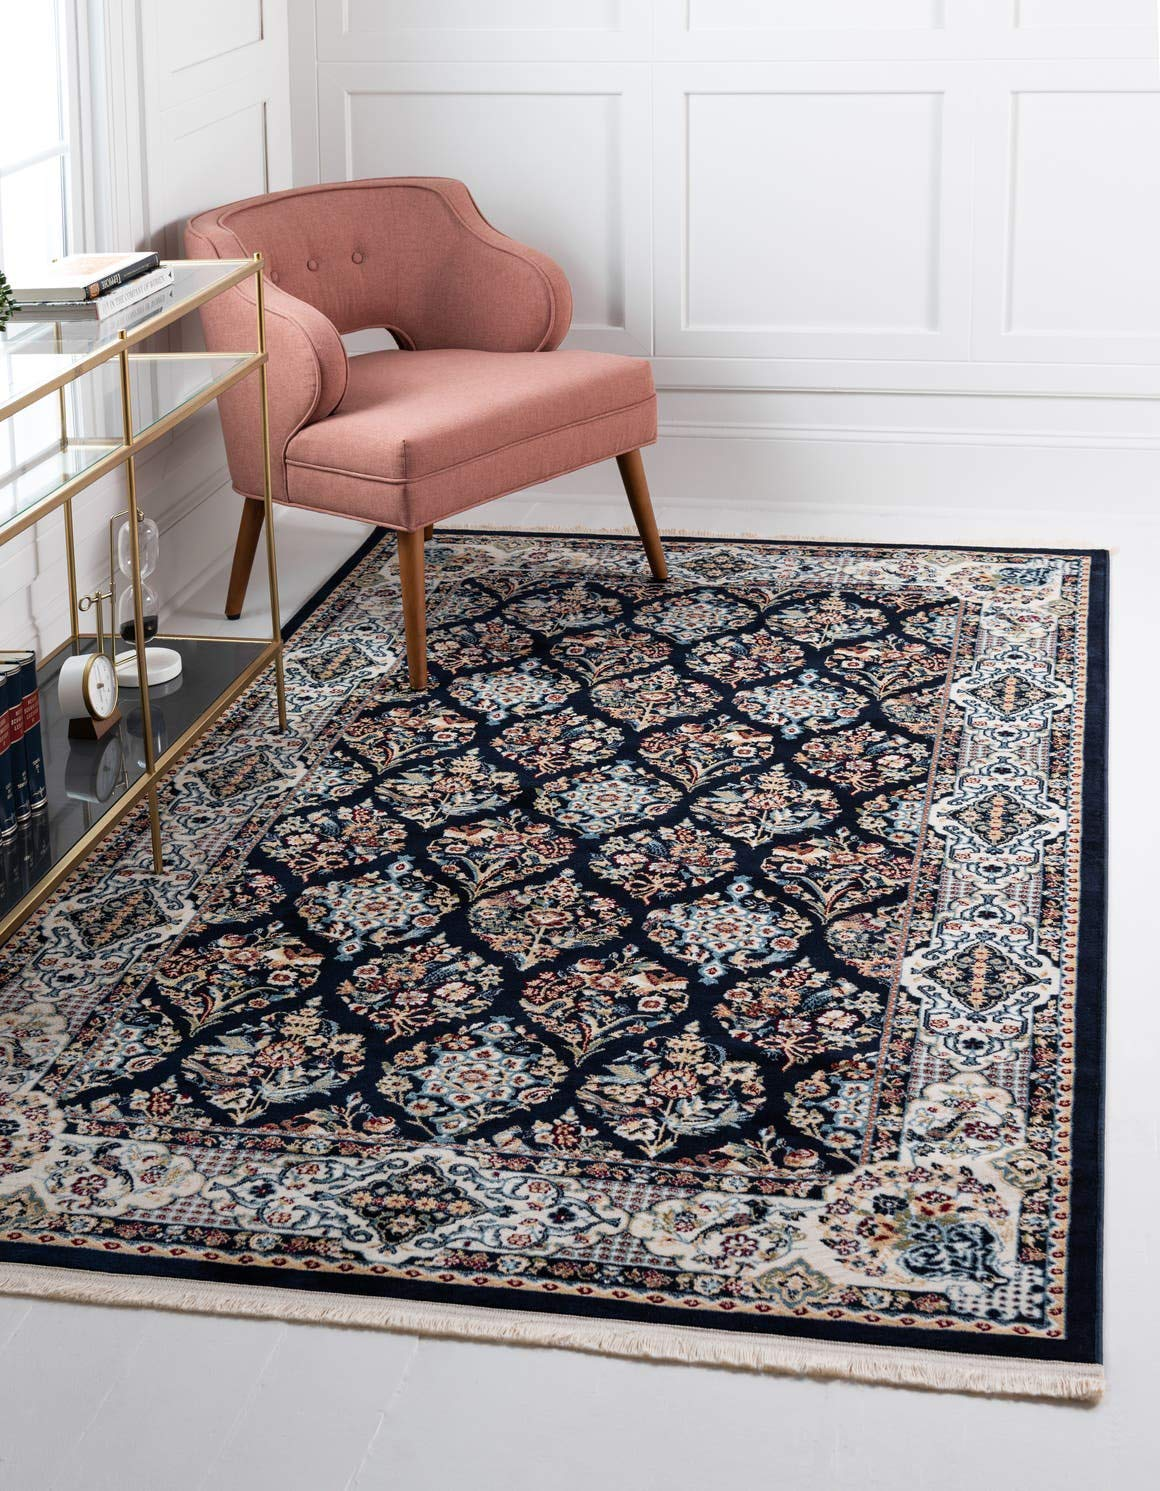 Unique Loom Narenj Collection Classic Traditional Repeating Pattern Navy Blue Area Rug 5 0 x 8 0